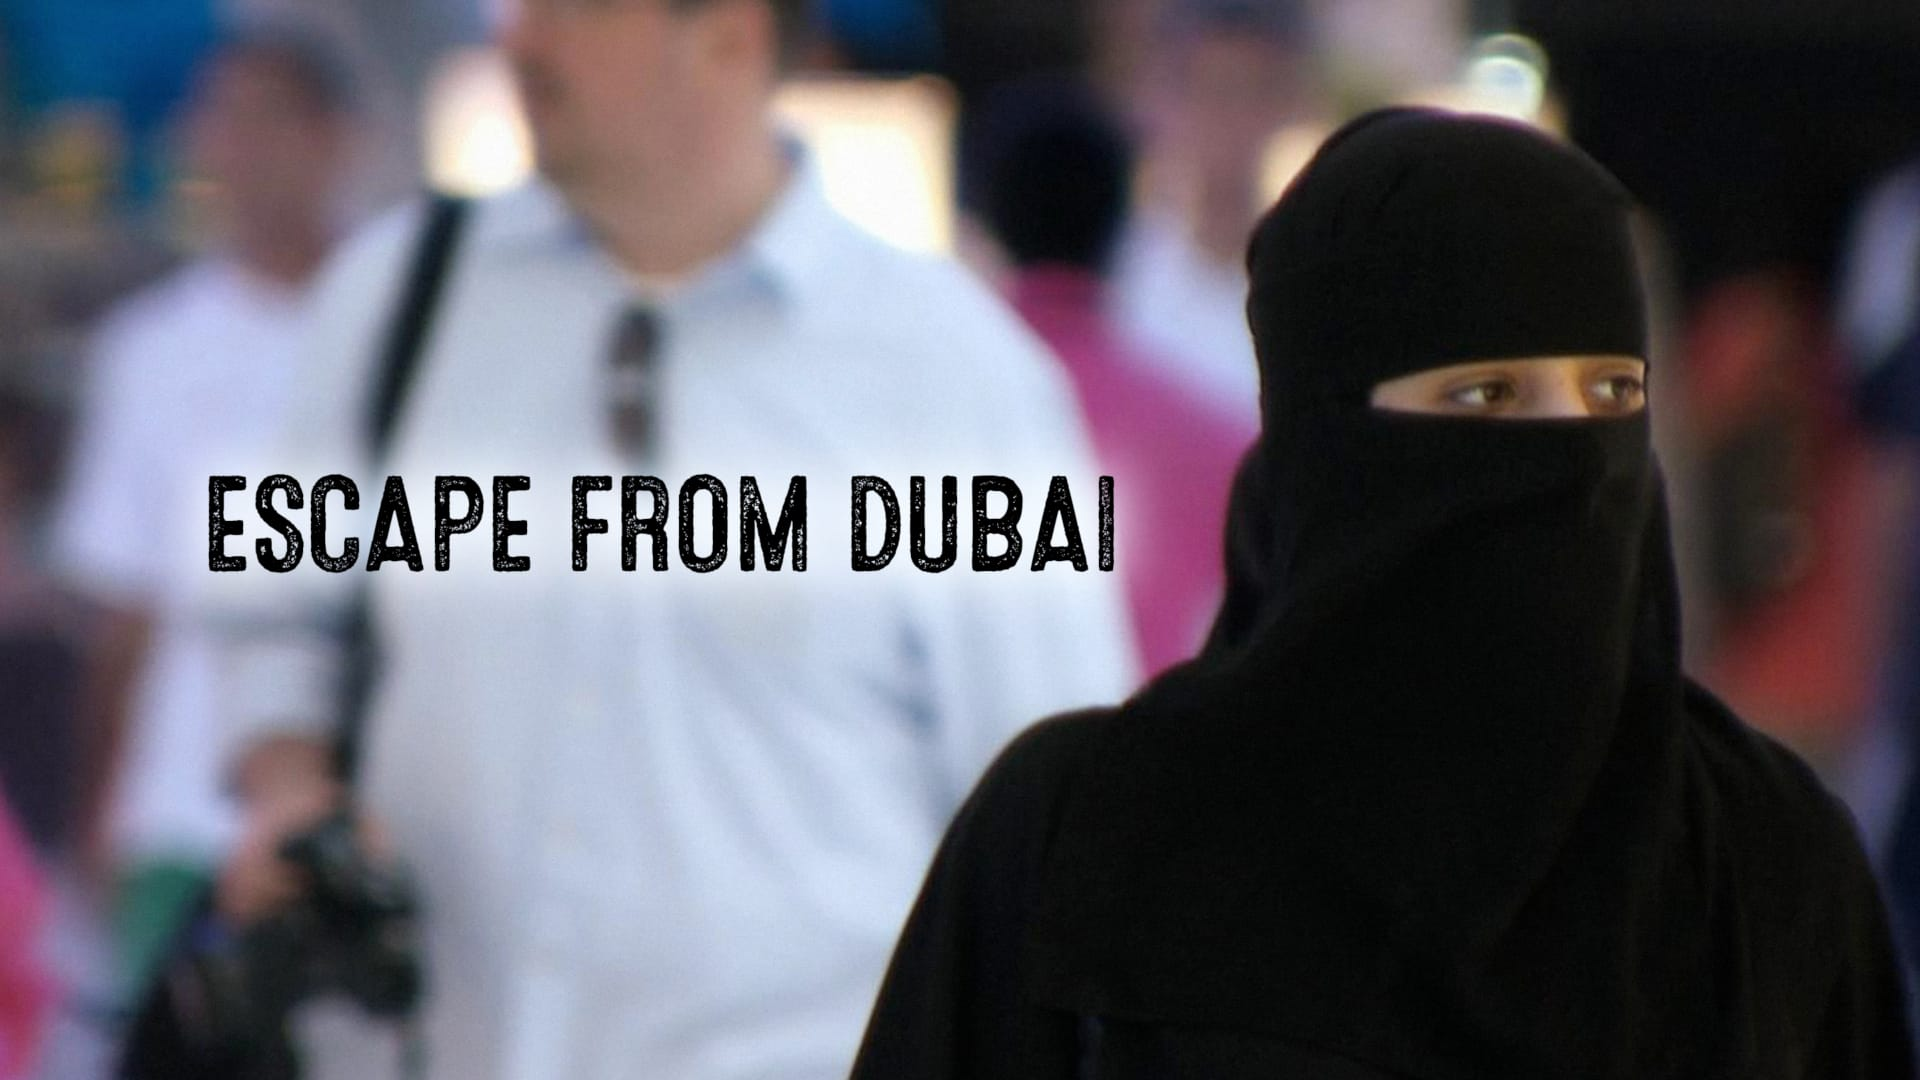 Escape from Dubai: The Mystery of the Runaway Princess